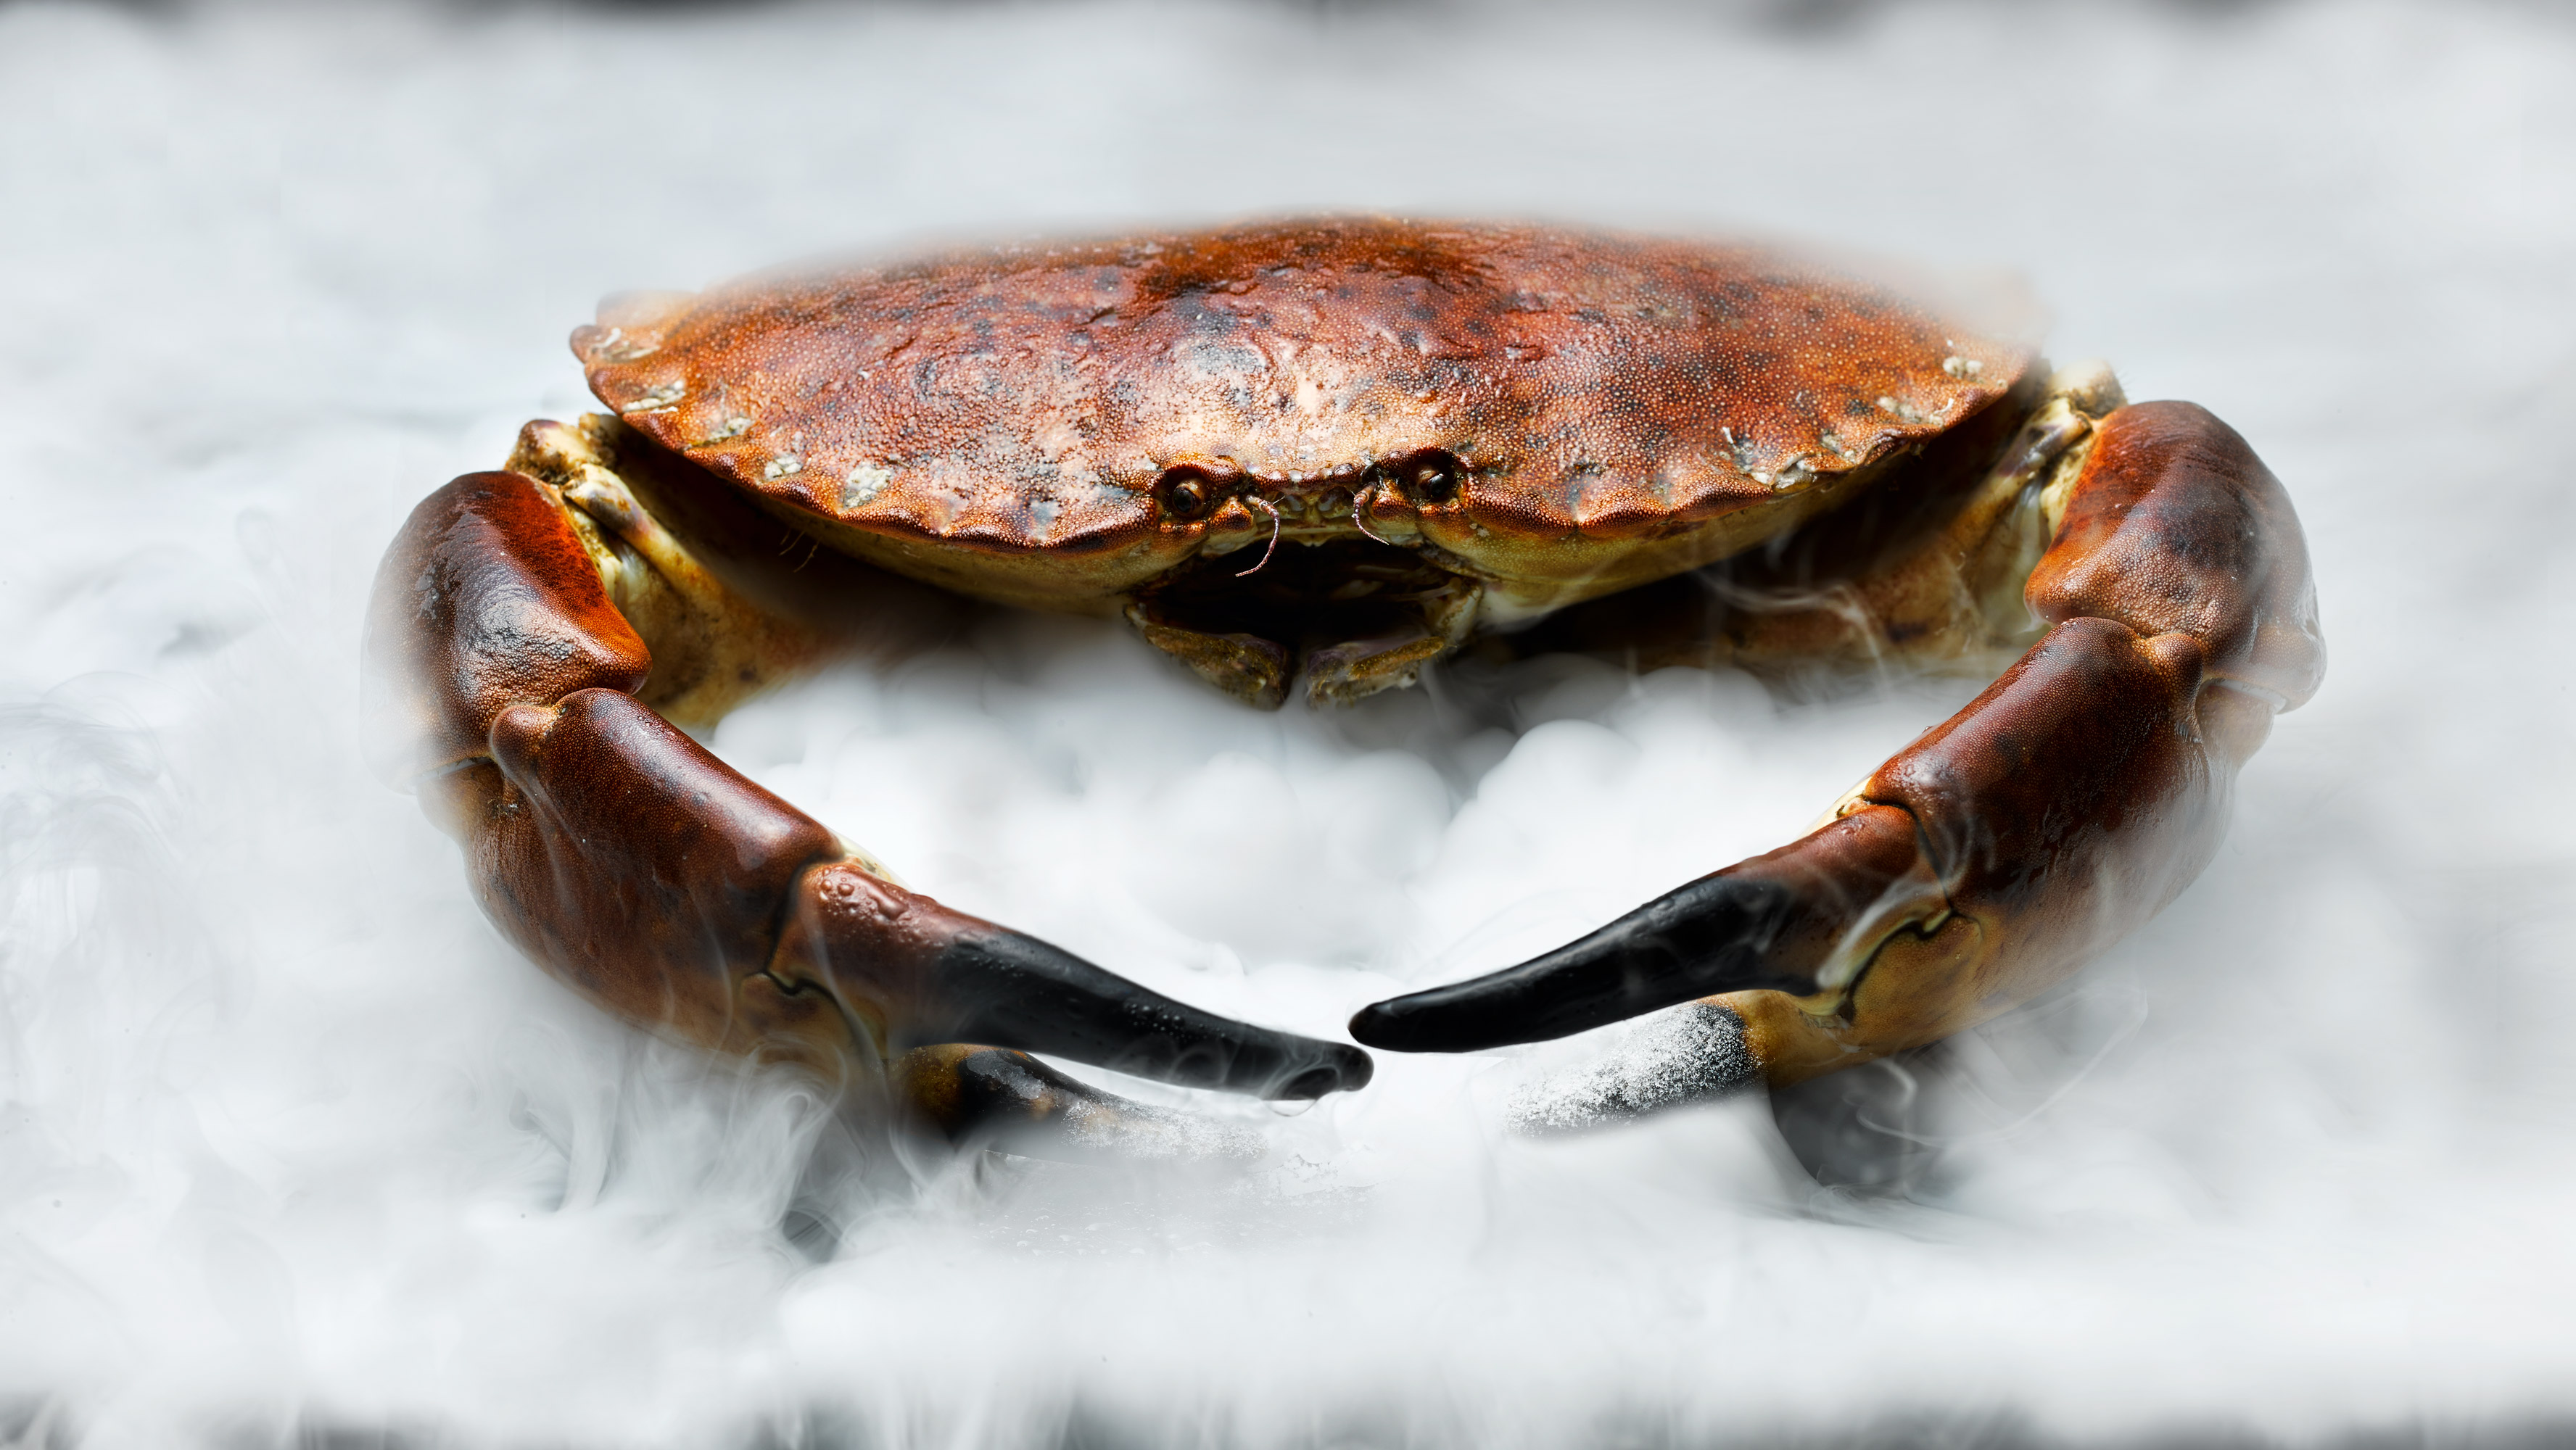 Food photographer London Image of Crab out of mist